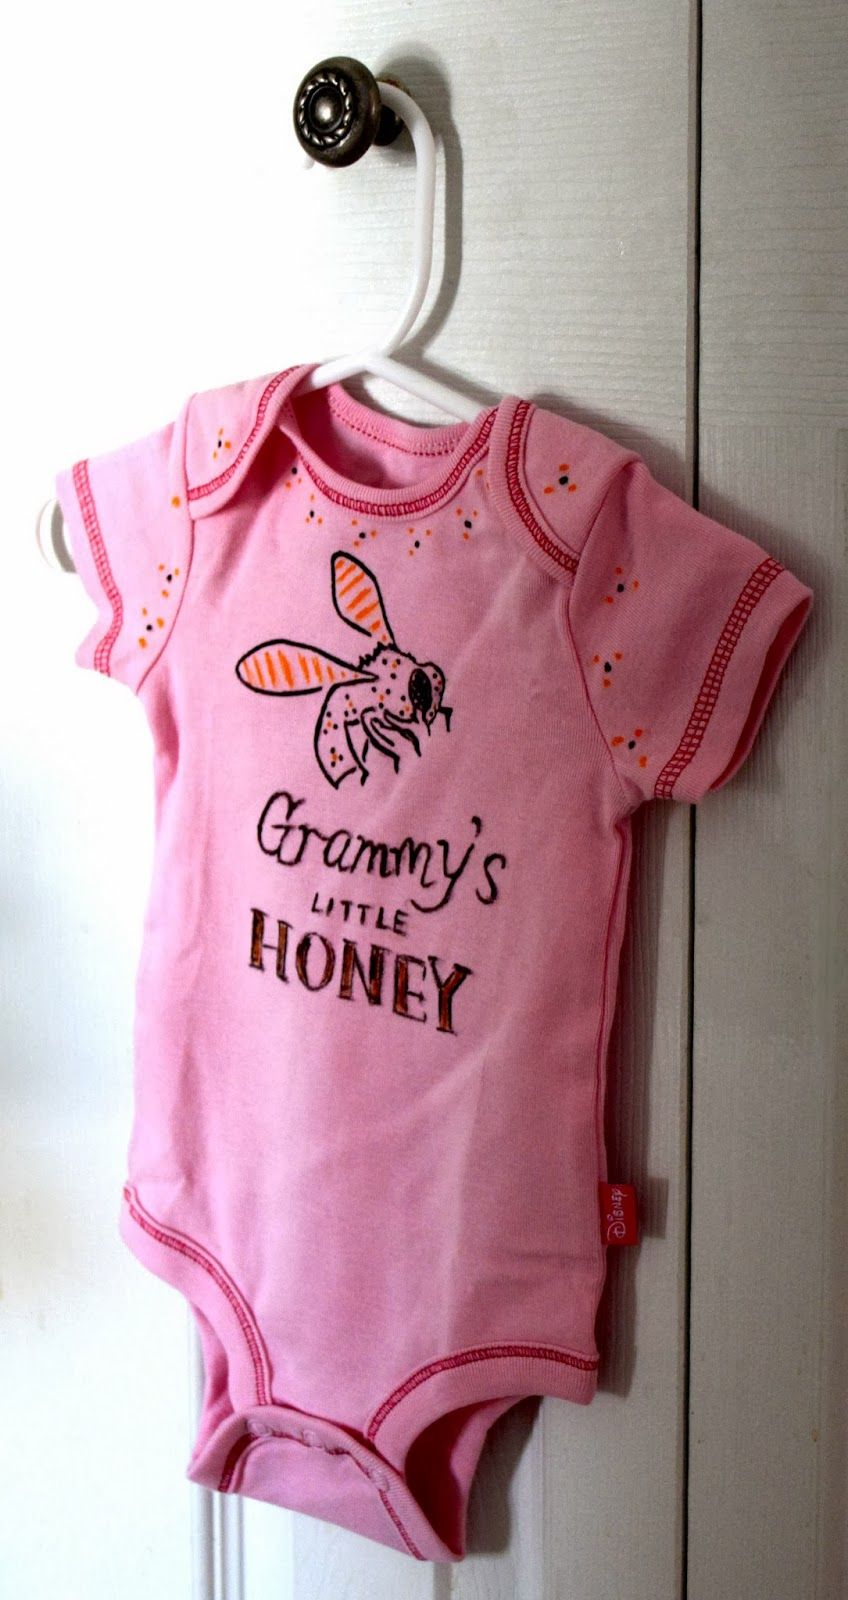 Diy baby onesie project with stencils and fabric markers